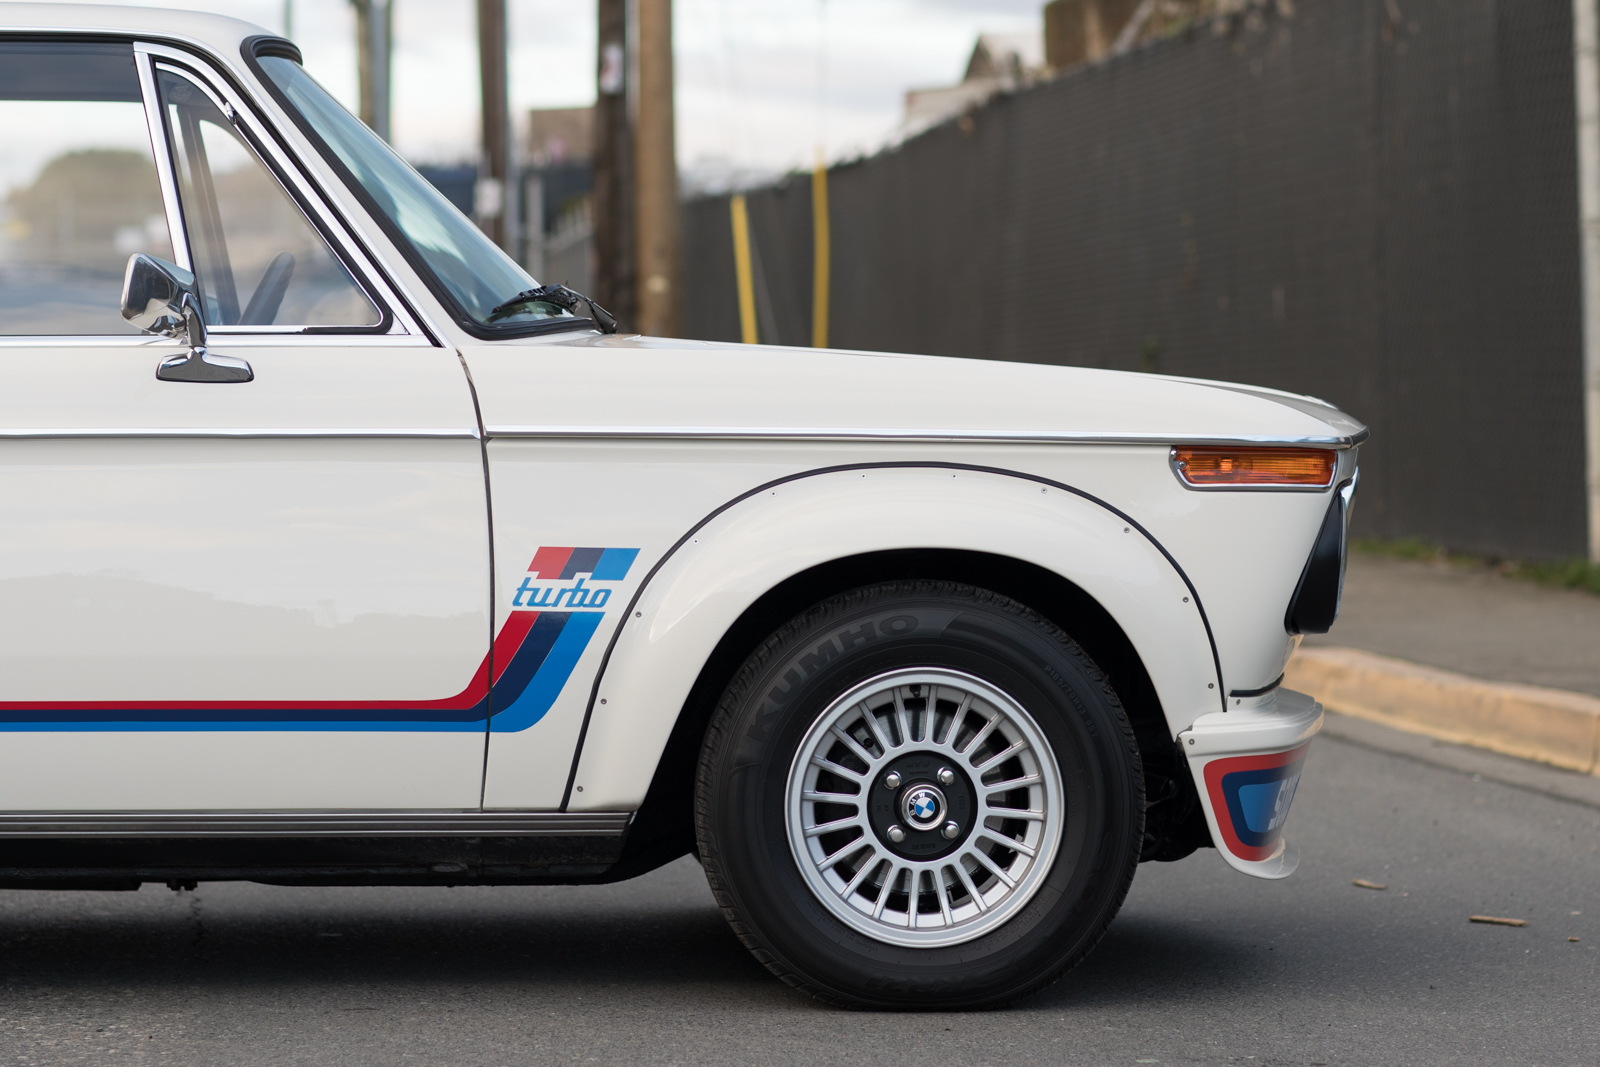 1974 BMW 2002 Turbo RH front corner and tire